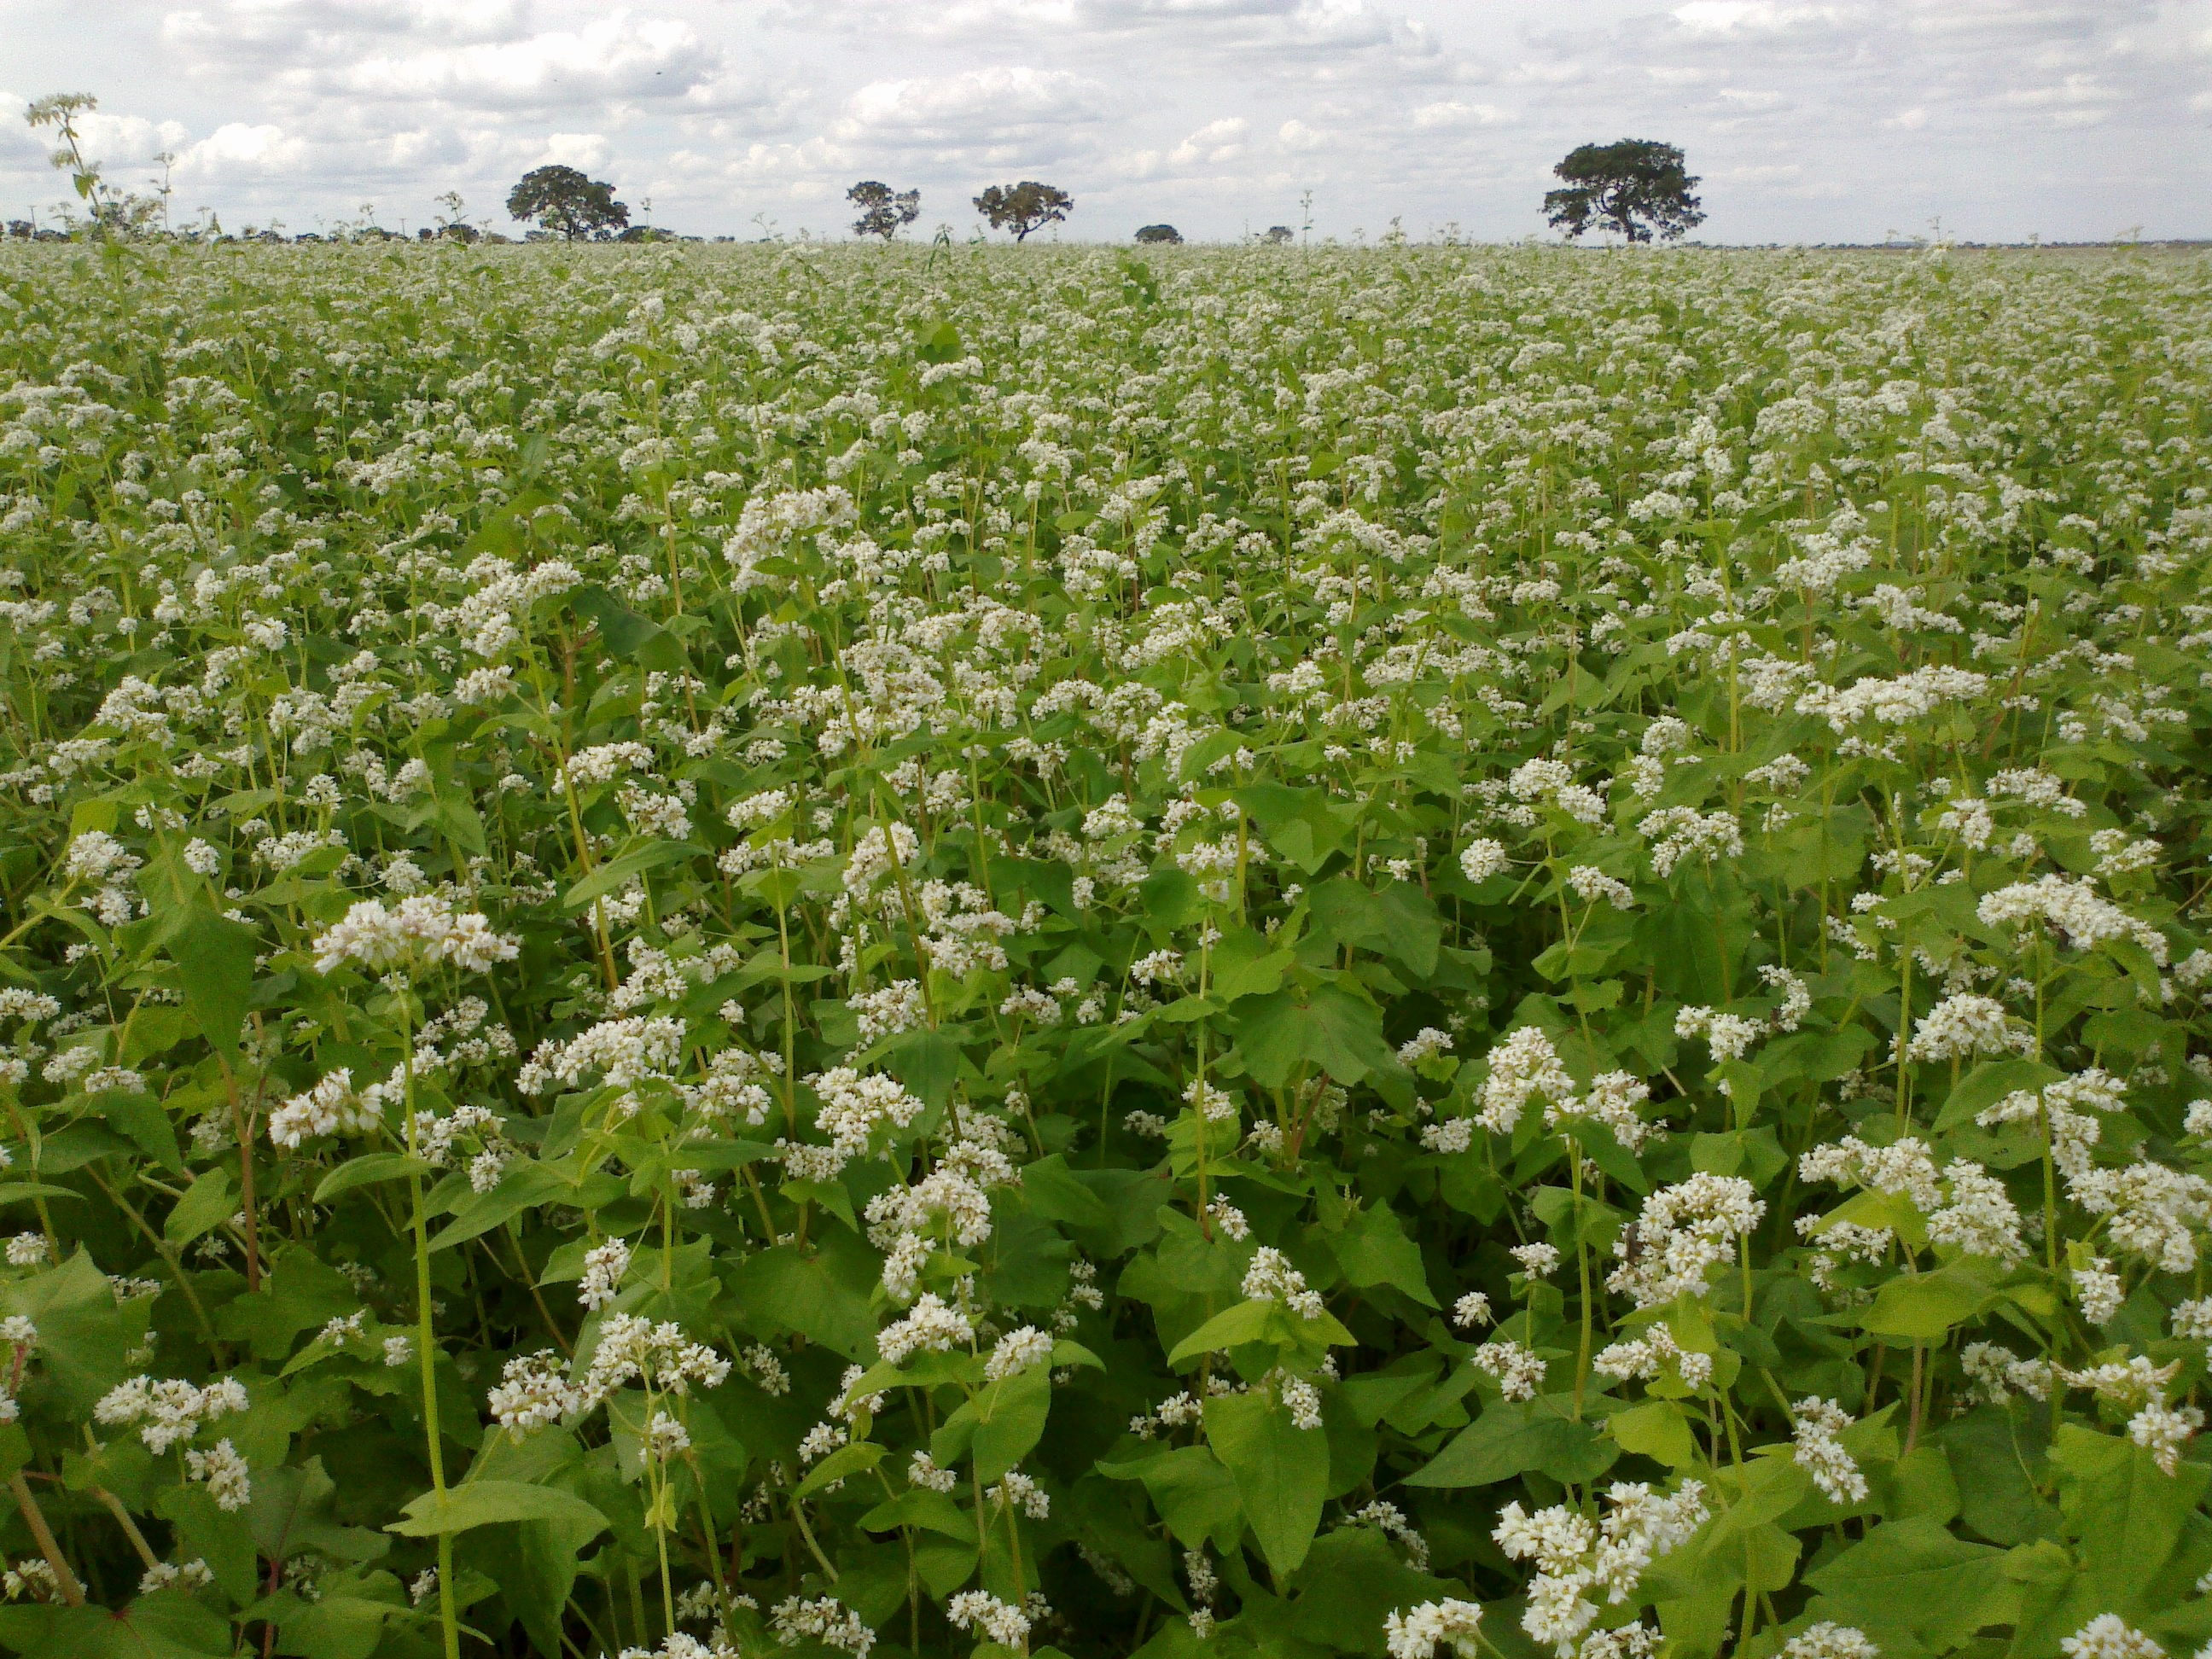 Field_of_buckwheat